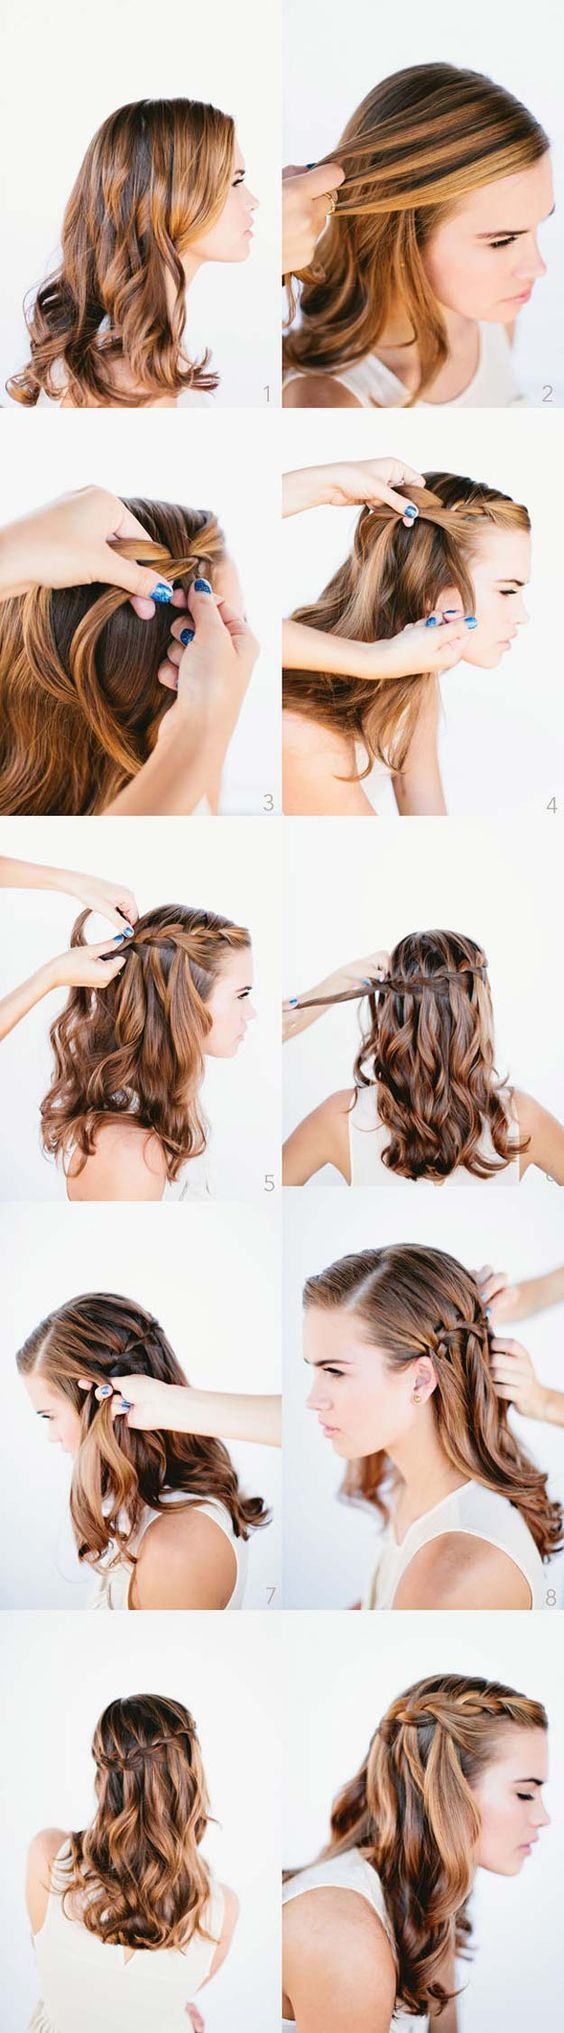 105 best Hairstyles images on Pinterest | Hair dos, Hair cut and ...